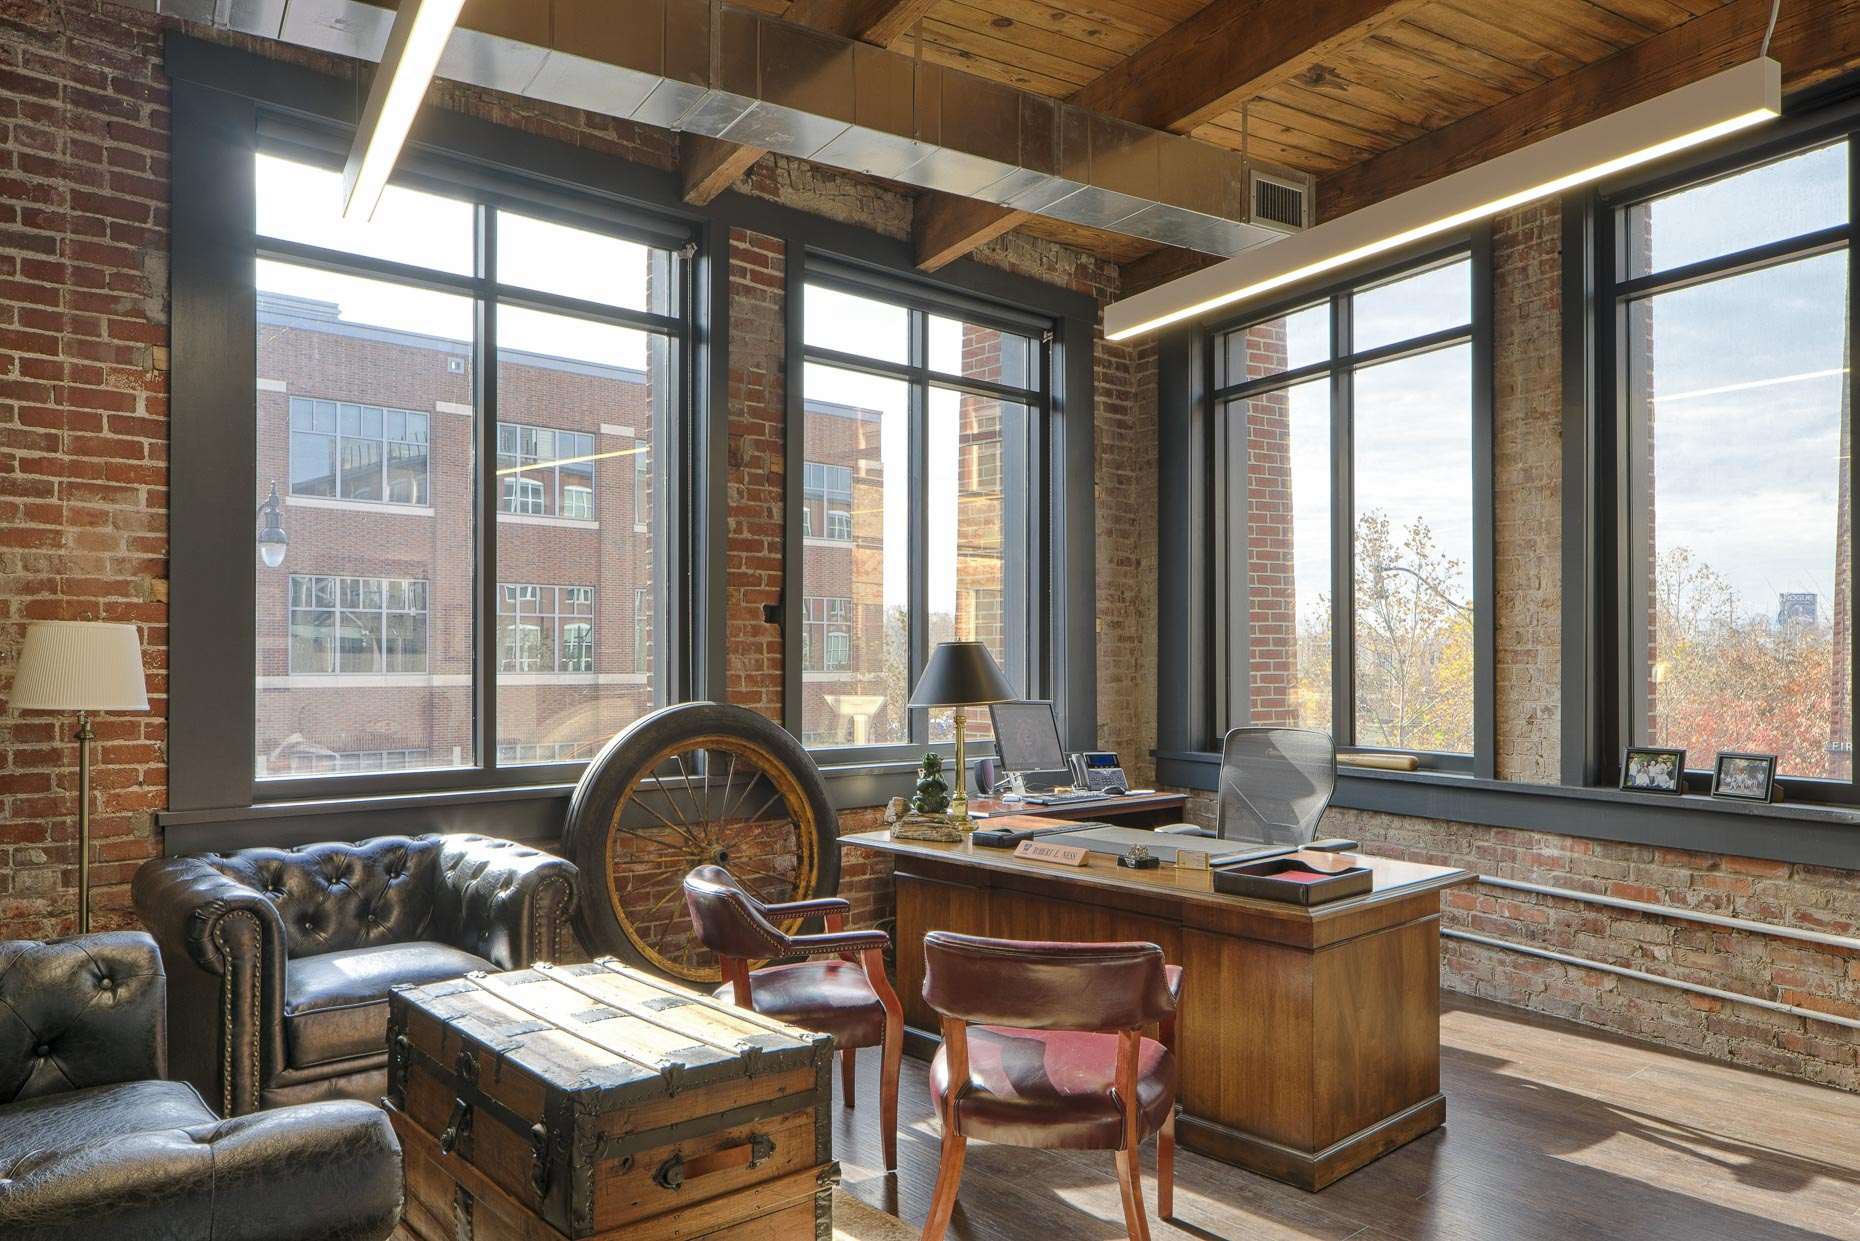 ODW Offices at The Buggyworks by M+A Architects & Turner Construction photographed by Lauren K Davis based in Columbus, Ohio